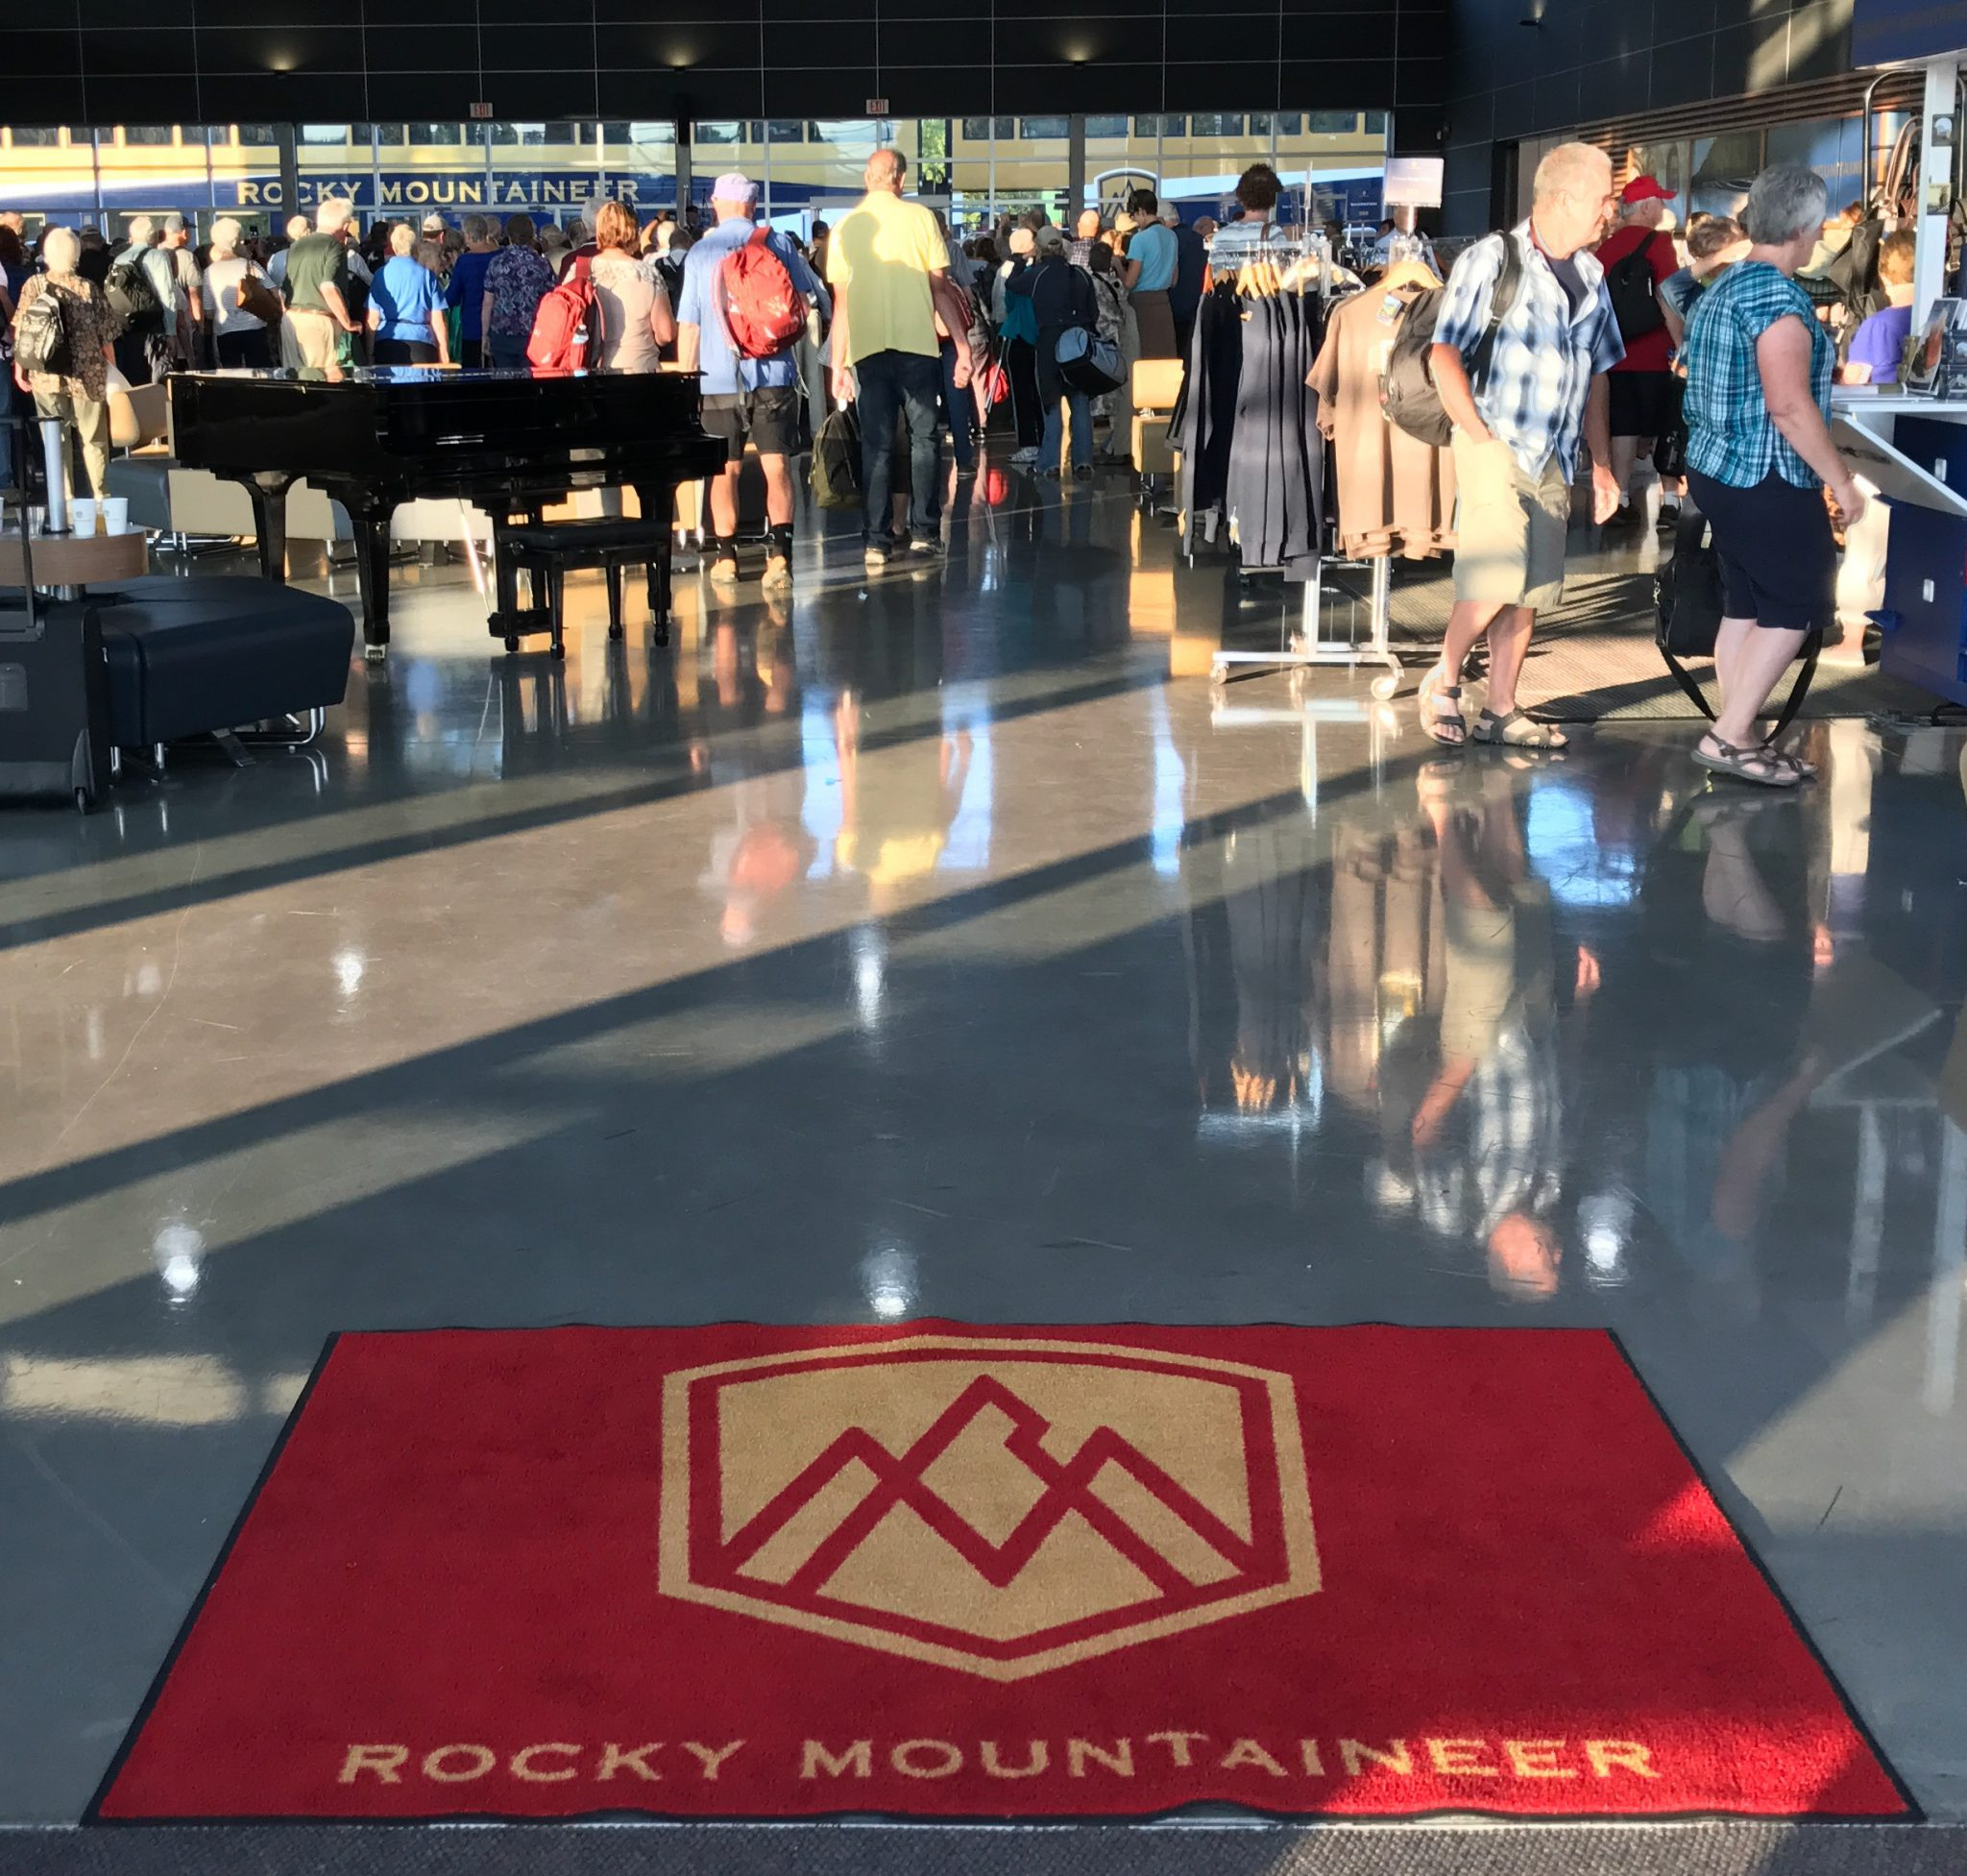 Velkommen til Rocky Mountaineer Train Station i Vancouver